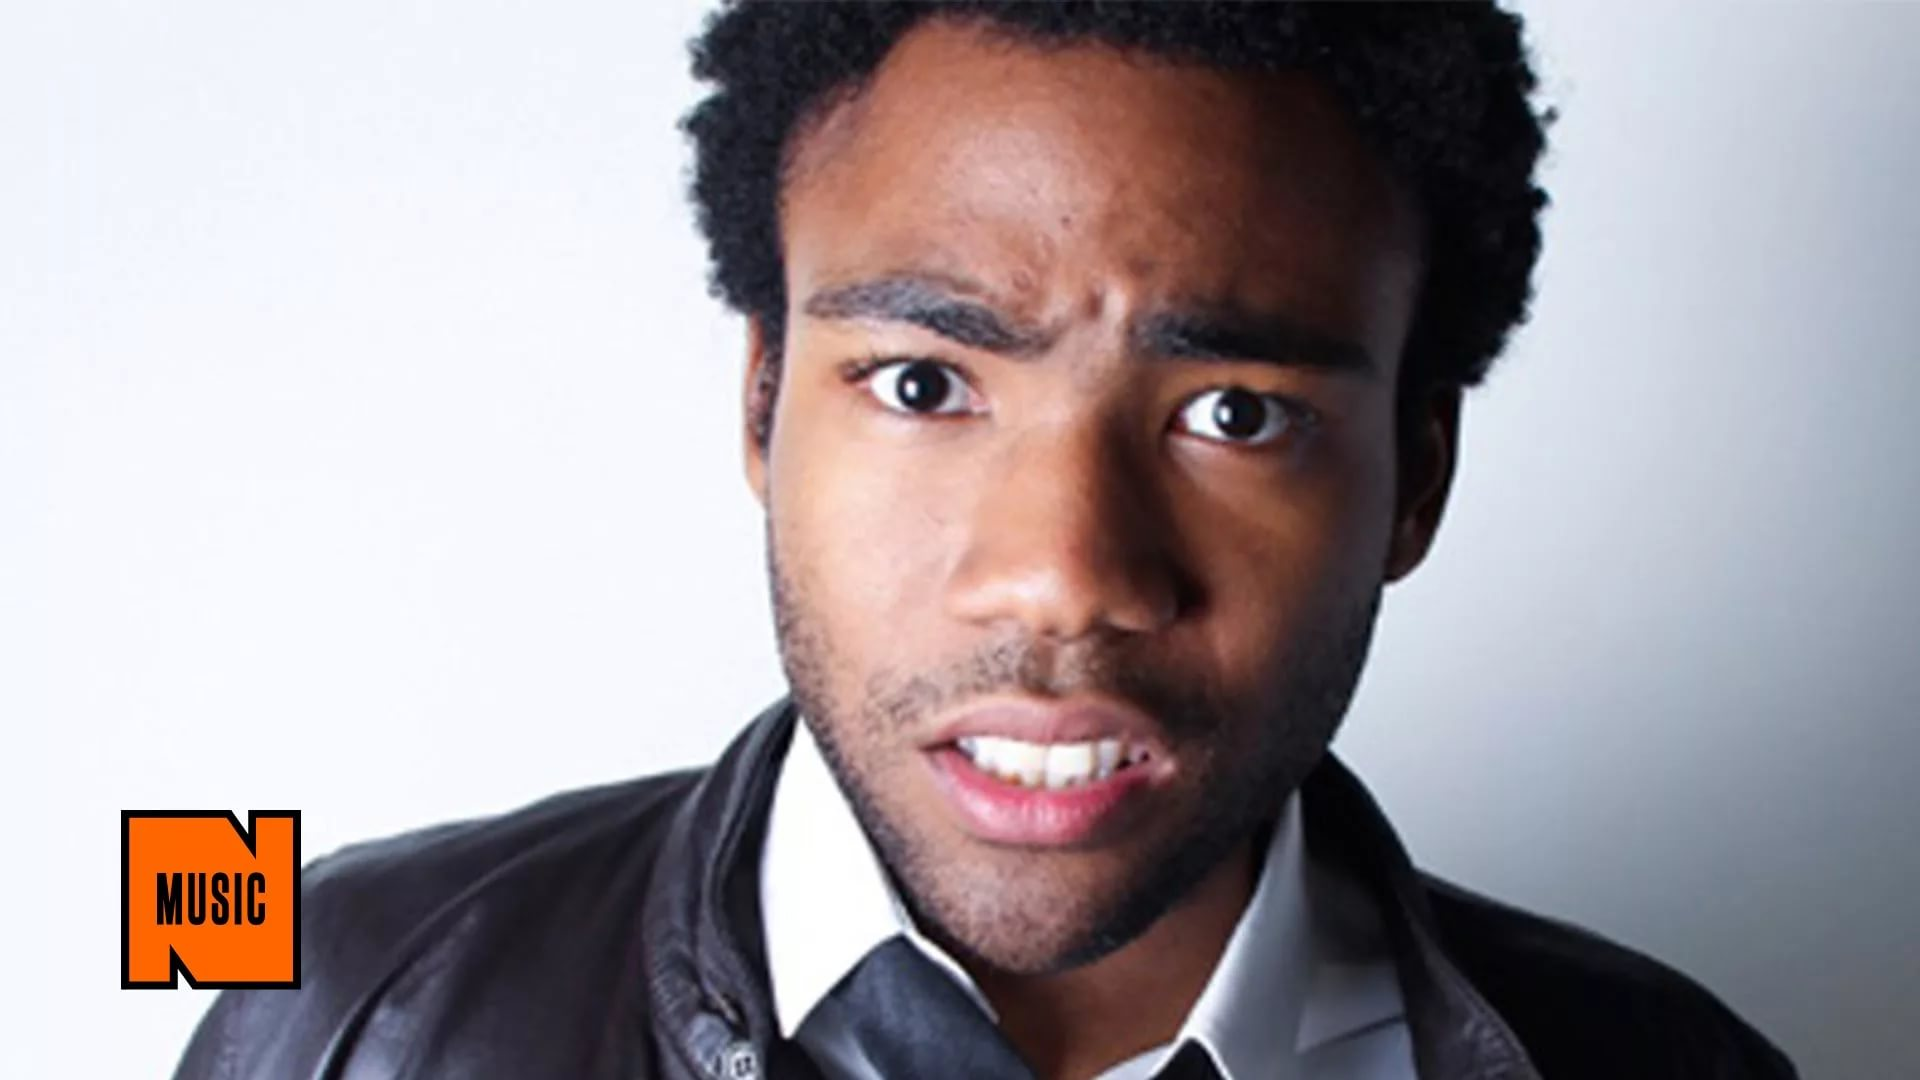 1920x1080 - Donald Glover Wallpapers 20